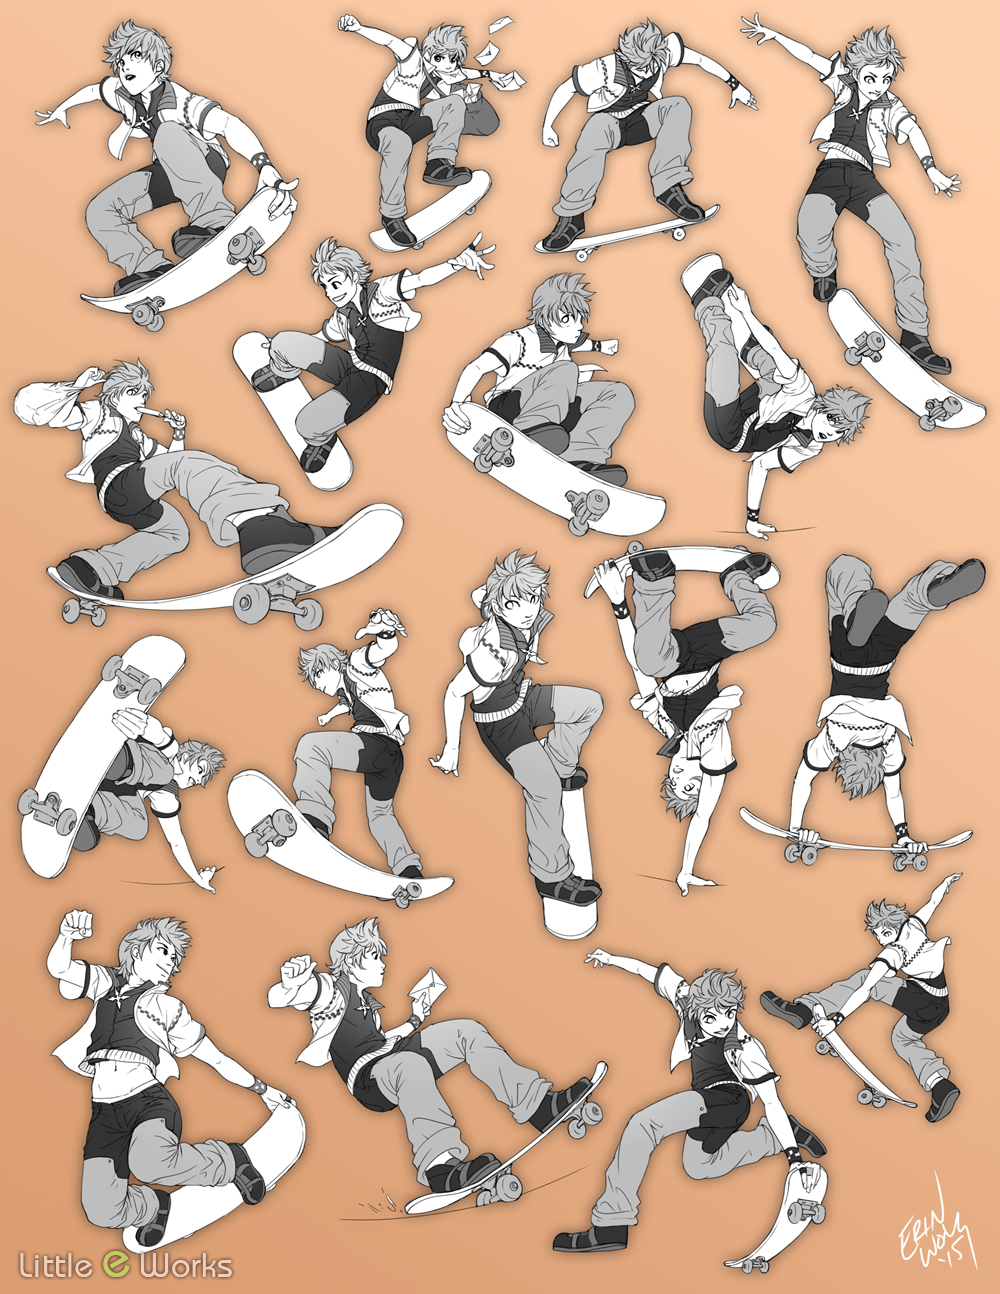 Practice with drawing bodies in motion. Character is from Kingdom Hearts.